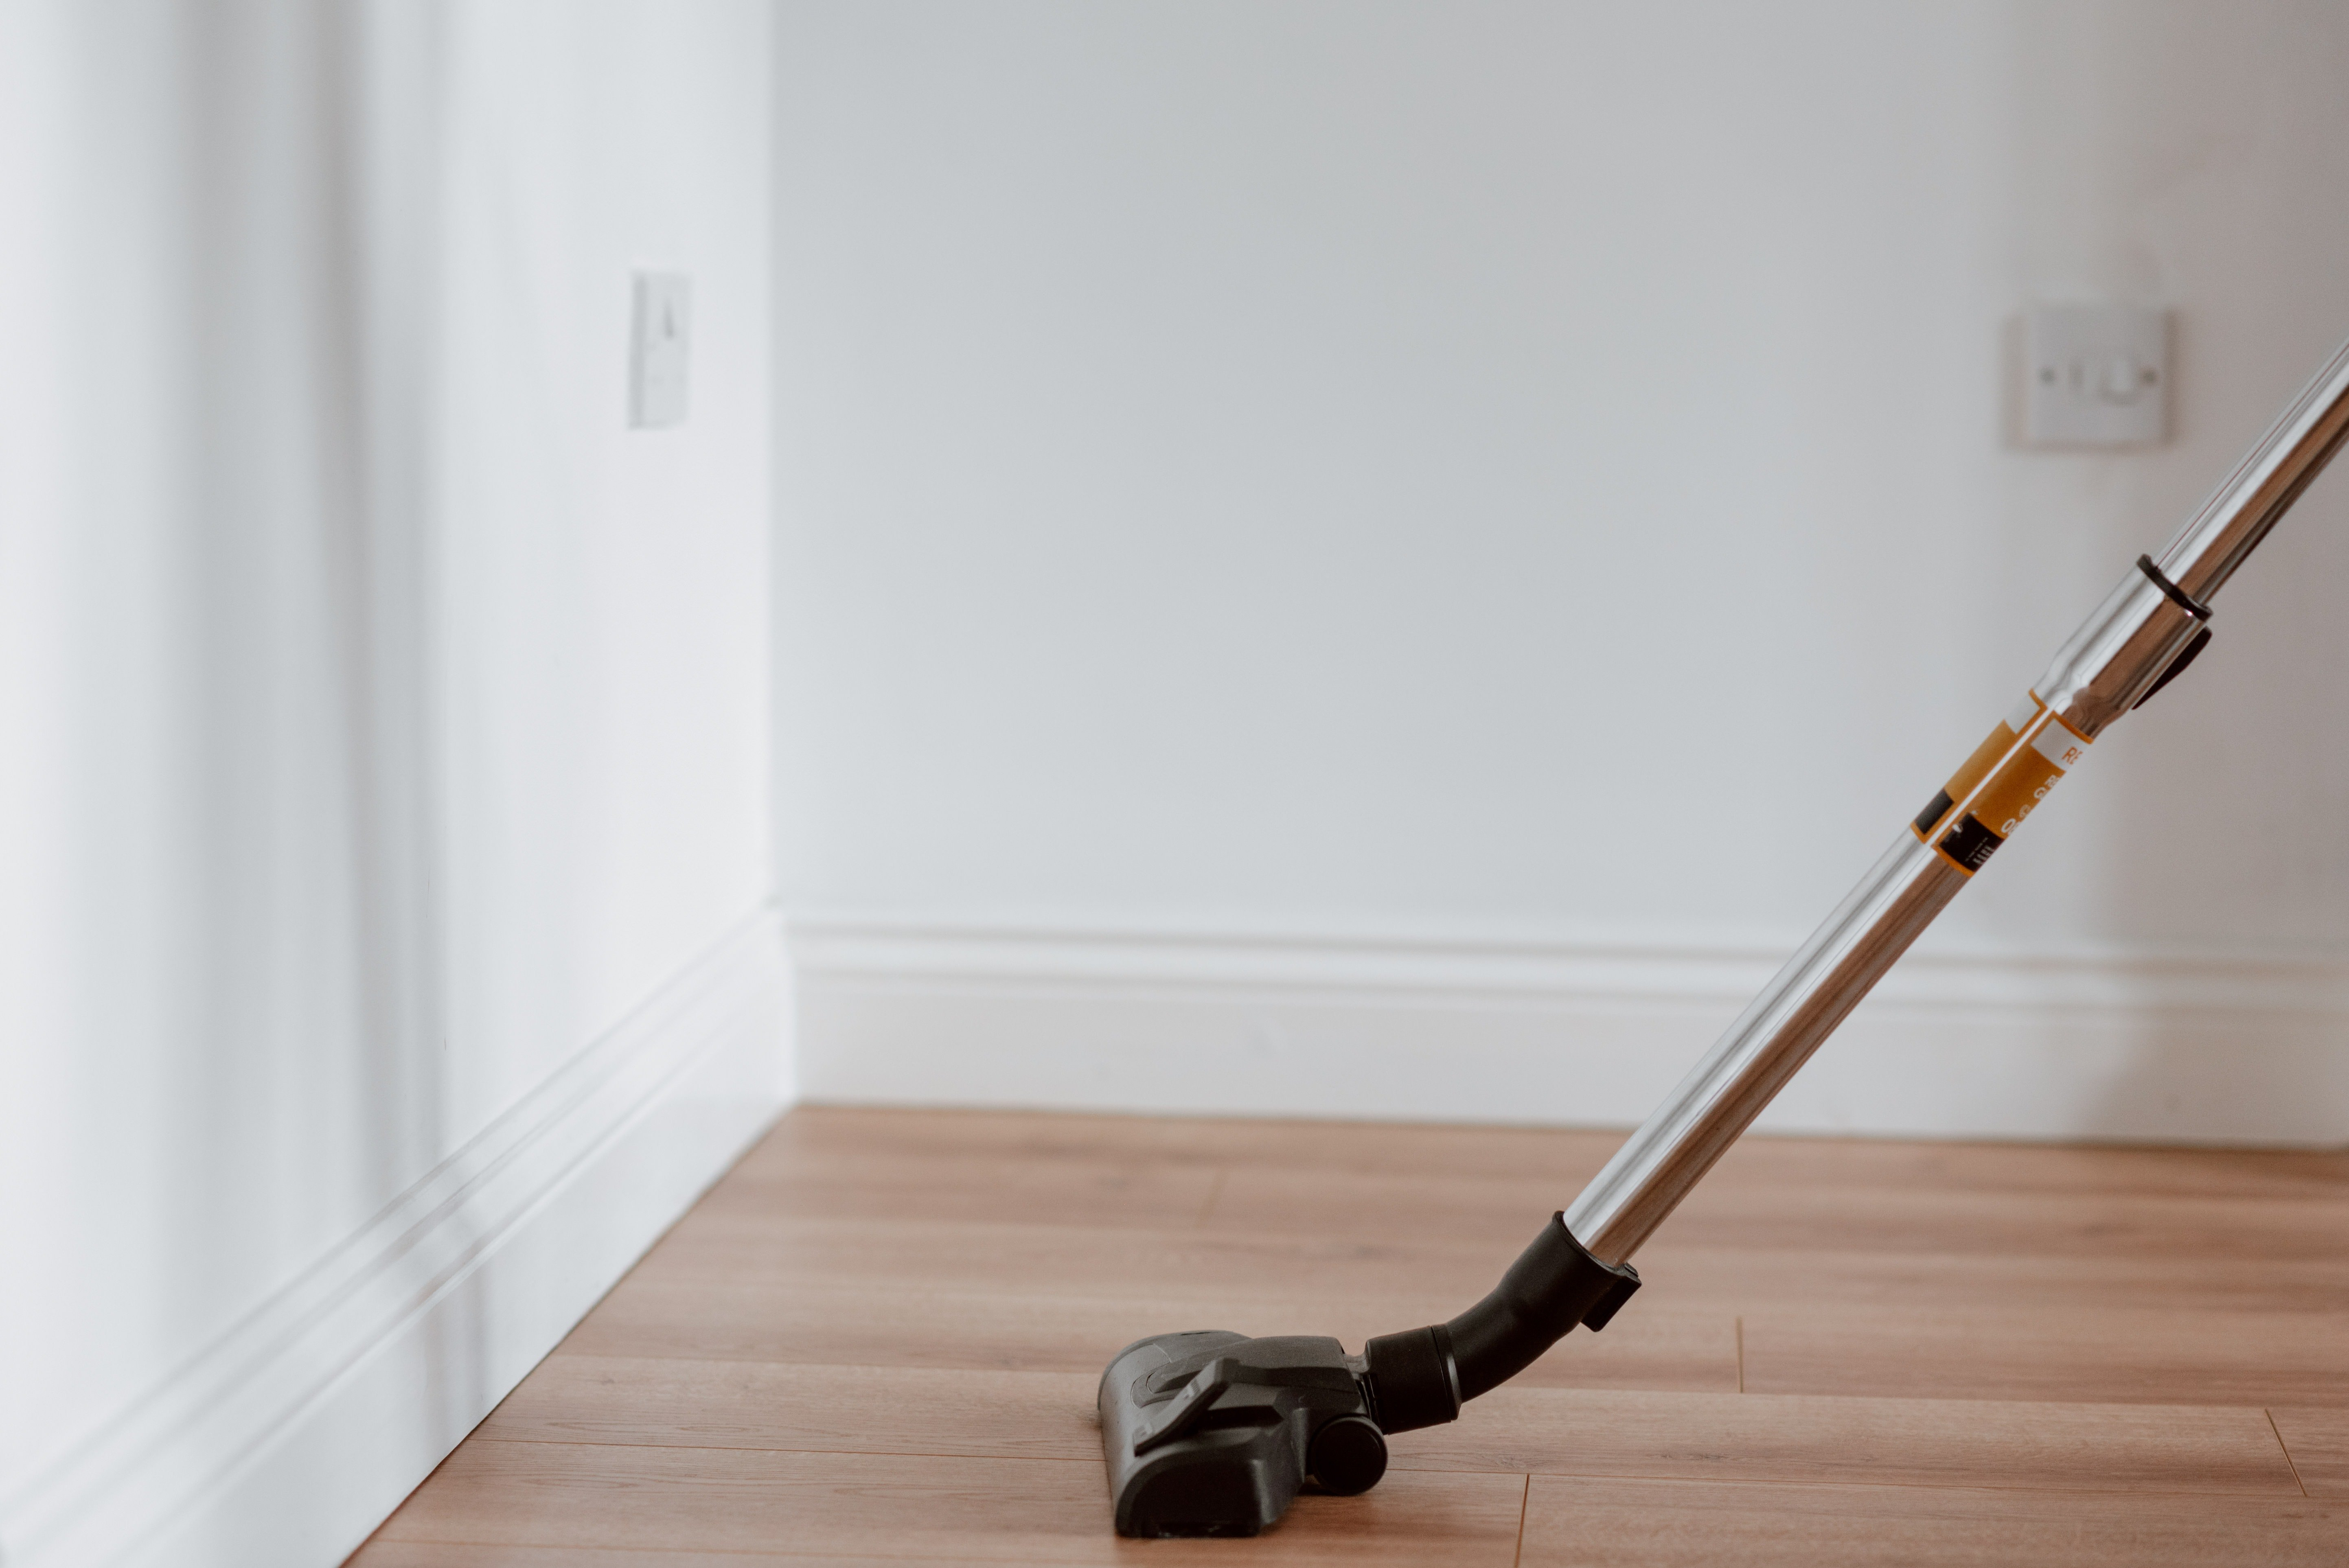 A vacuum cleaner on a wooden floor.   Pexels/ Anete Lusina